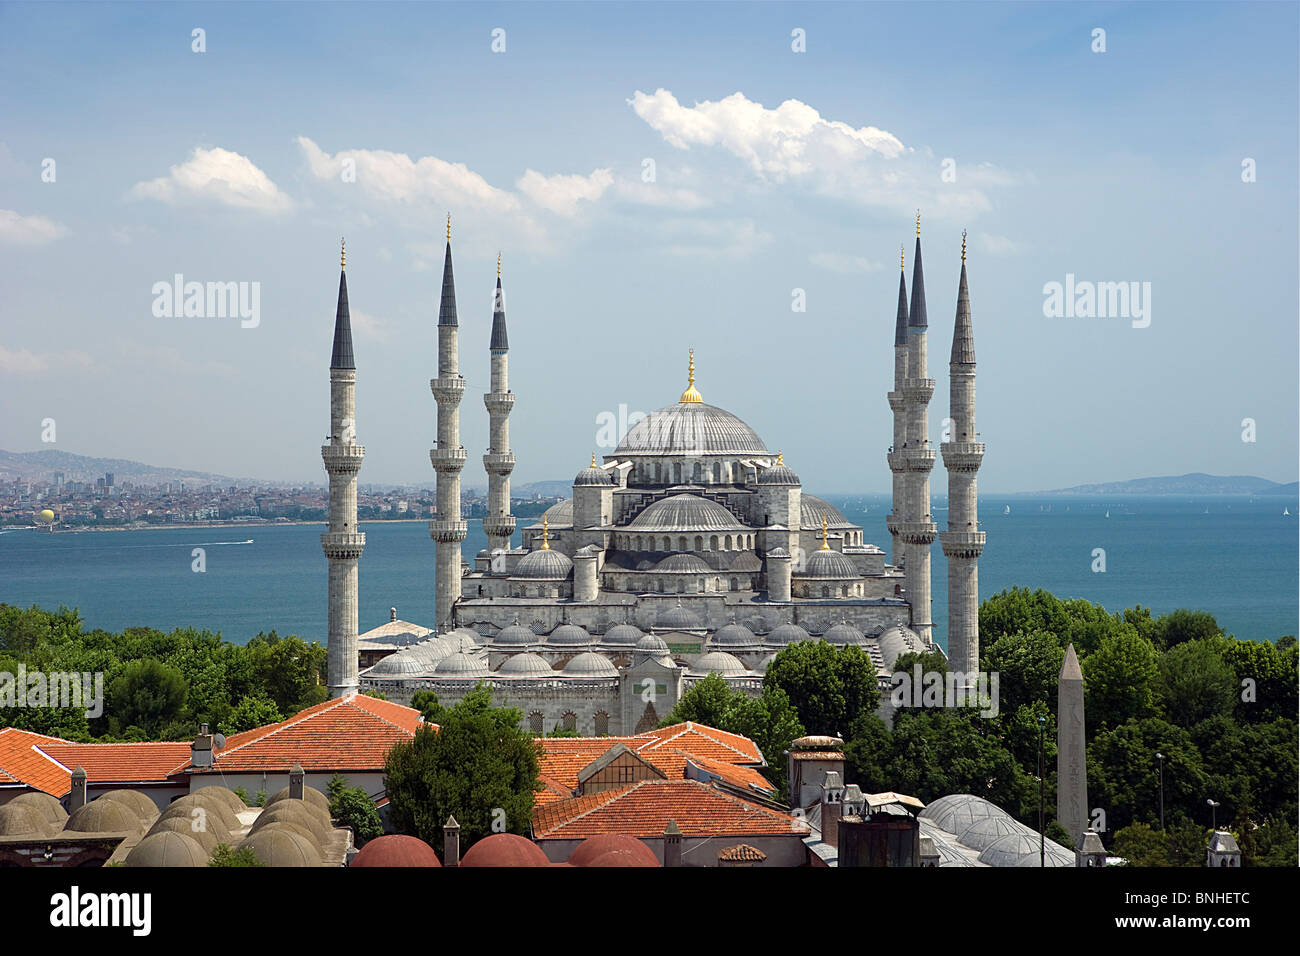 Turkey June 2008 Istanbul city Blue Mosque Sultan Ahmed Mosque - Stock Image